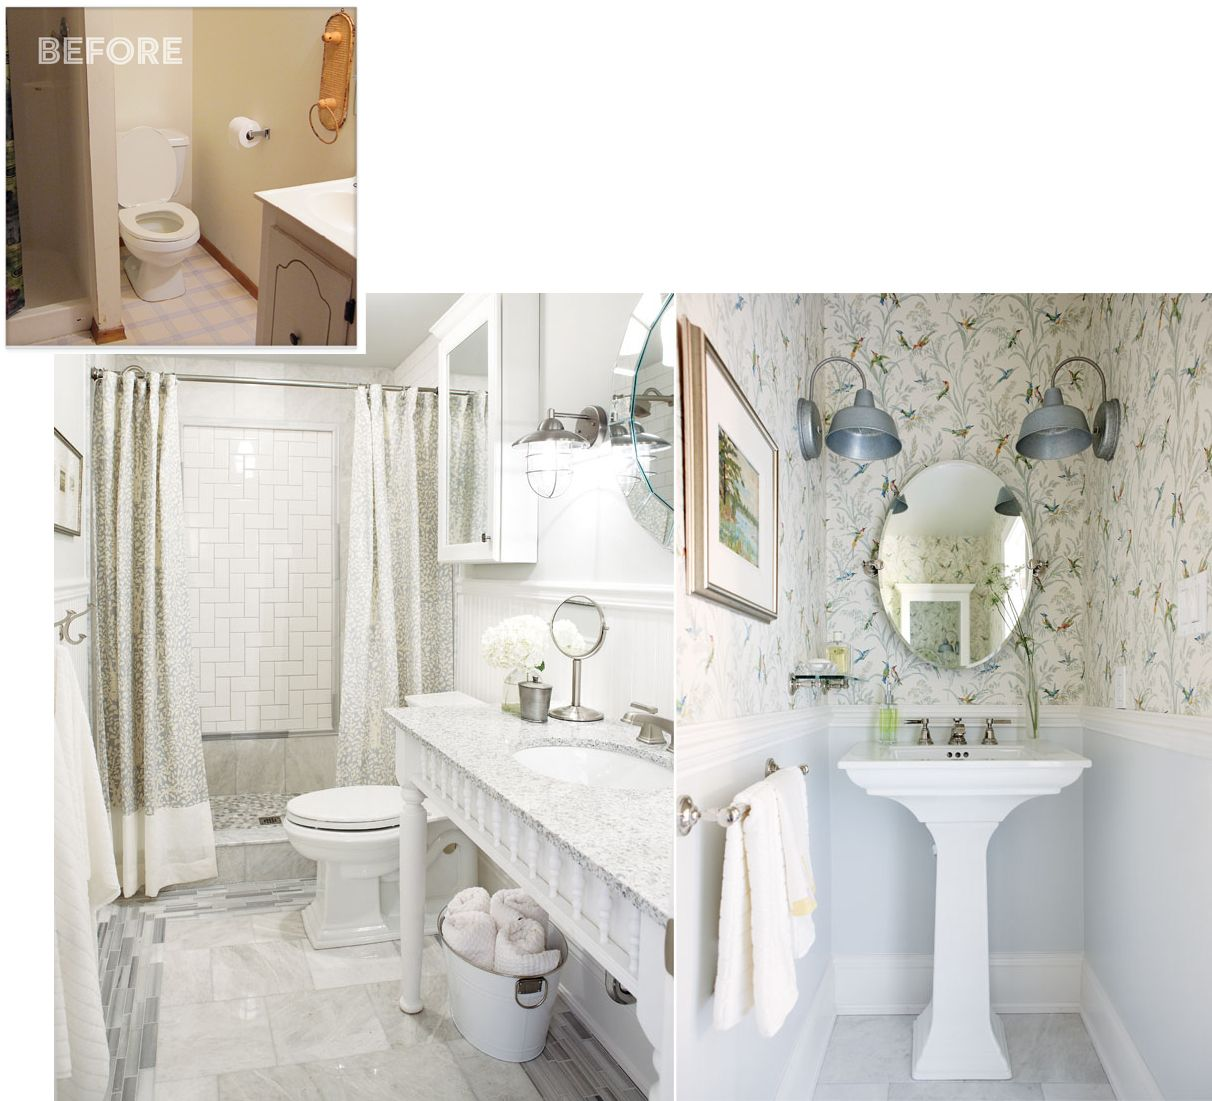 How to turn your home into a cozy country getaway | Custom vanity ...